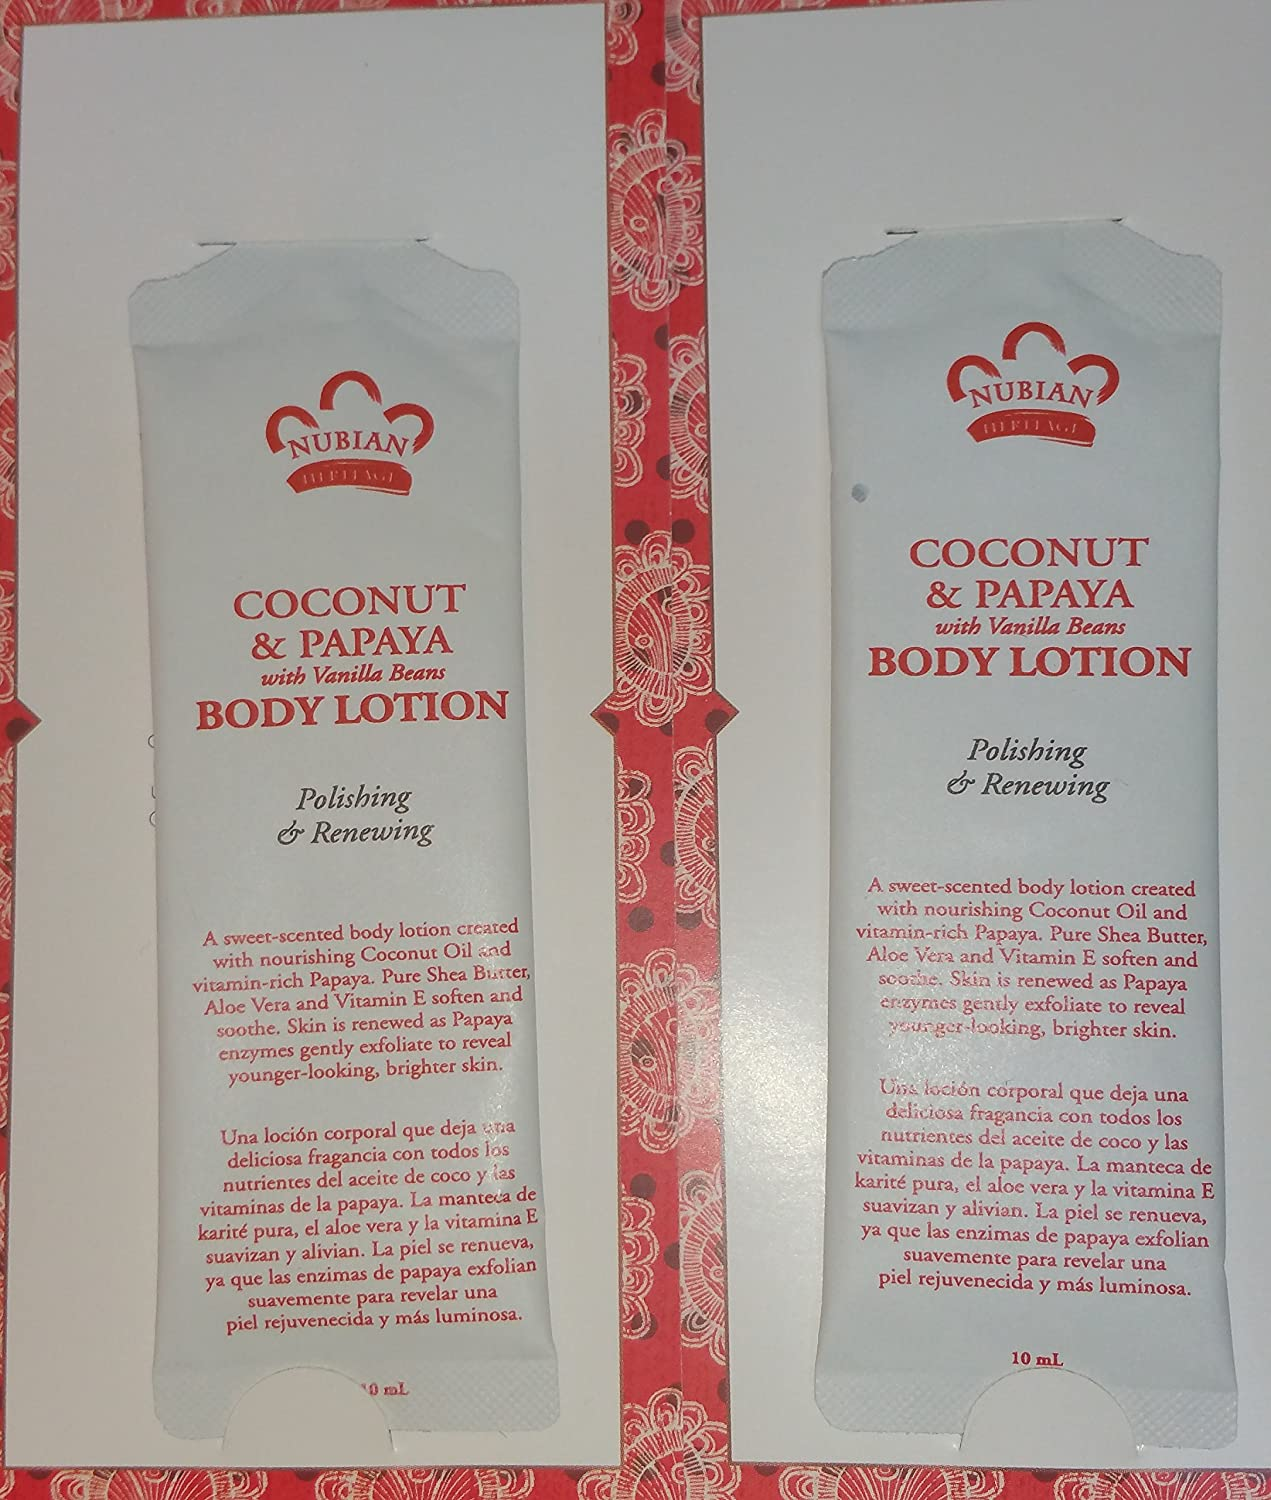 Amazon.com : 2 Nubian Coconut & Papaya Body Lotion Samples 10 ml each and 2 $1 off coupons : Beauty